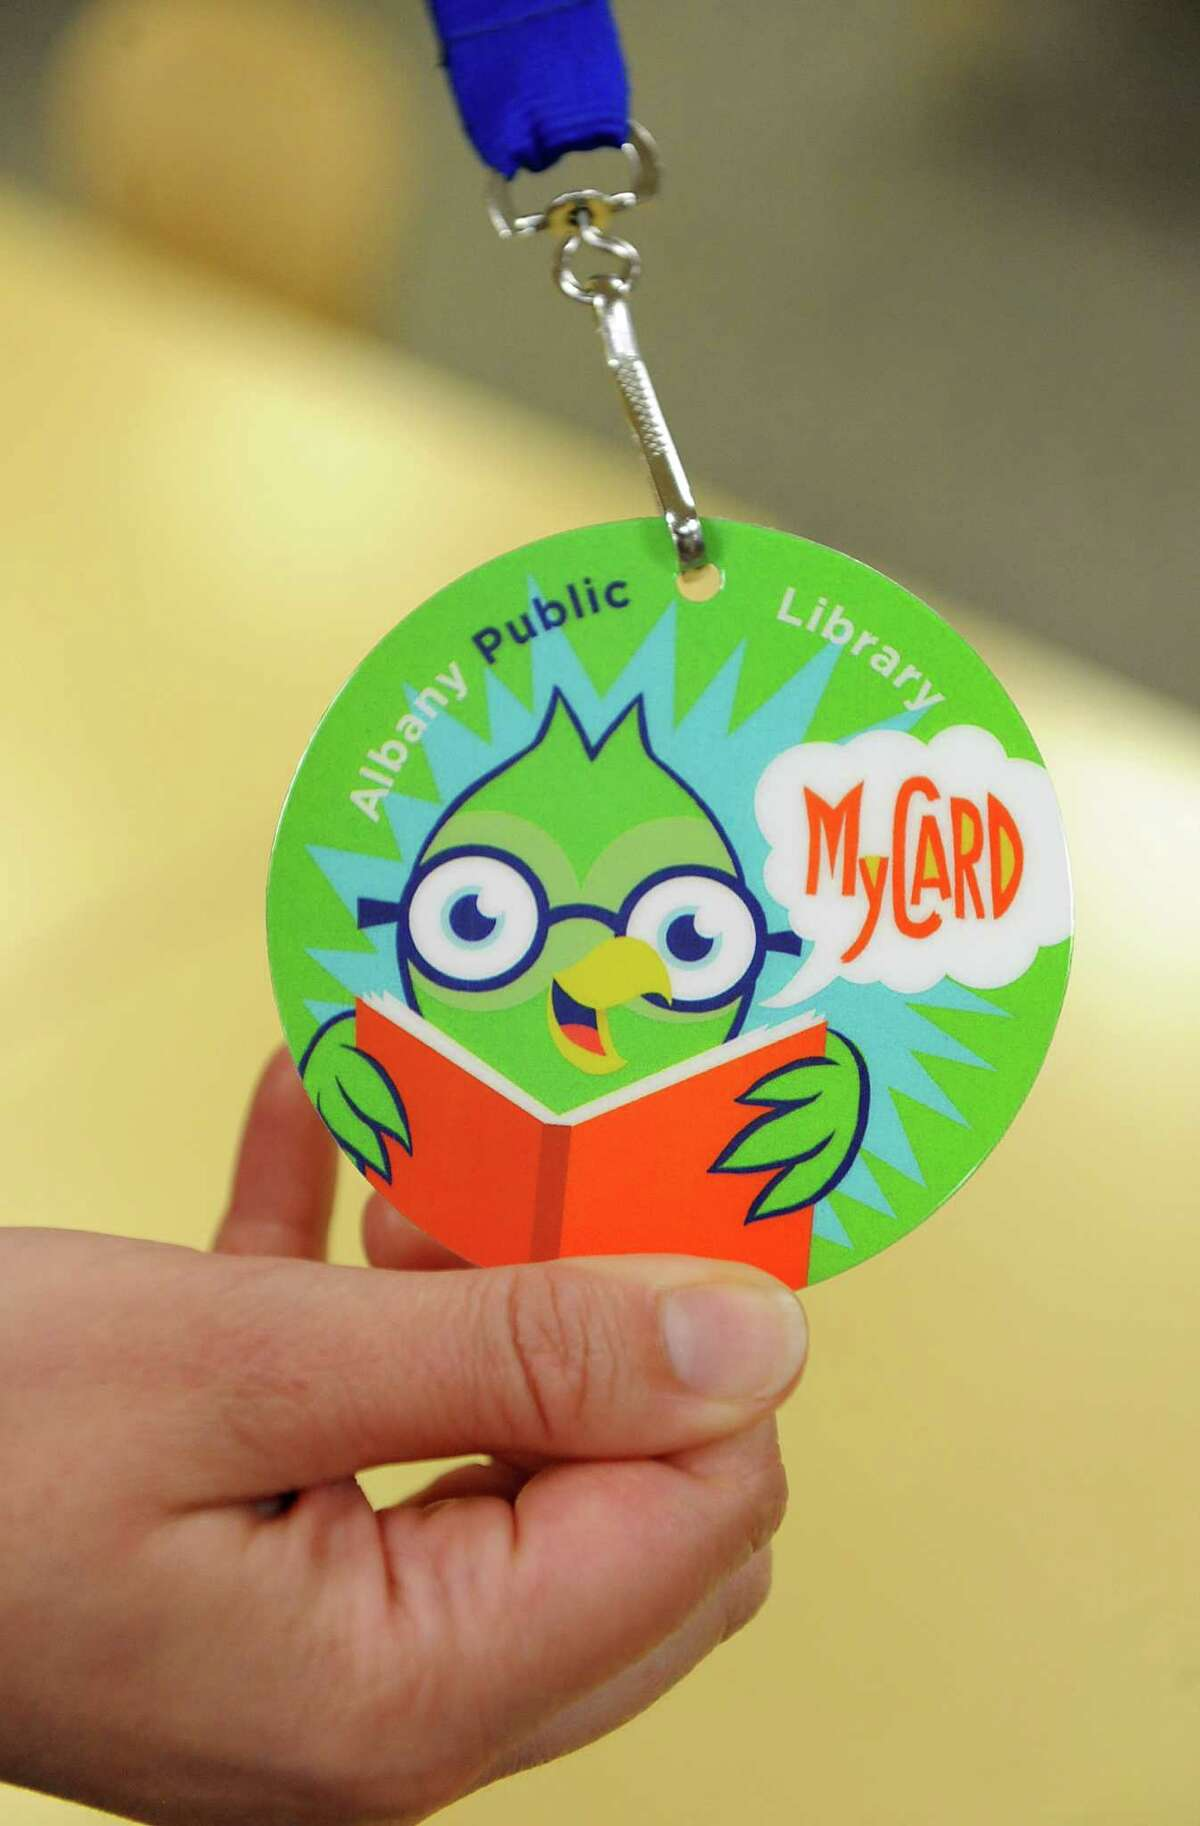 An Albany Public Library MyCard is shown for an initiative for children at the Albany Public Library Tuesday, June 17, 2014 in Albany, N.Y. The initiative was announced by Albany Public Library, Albany Mayor Kathy Sheehan and the City School District. (Lori Van Buren / Times Union)